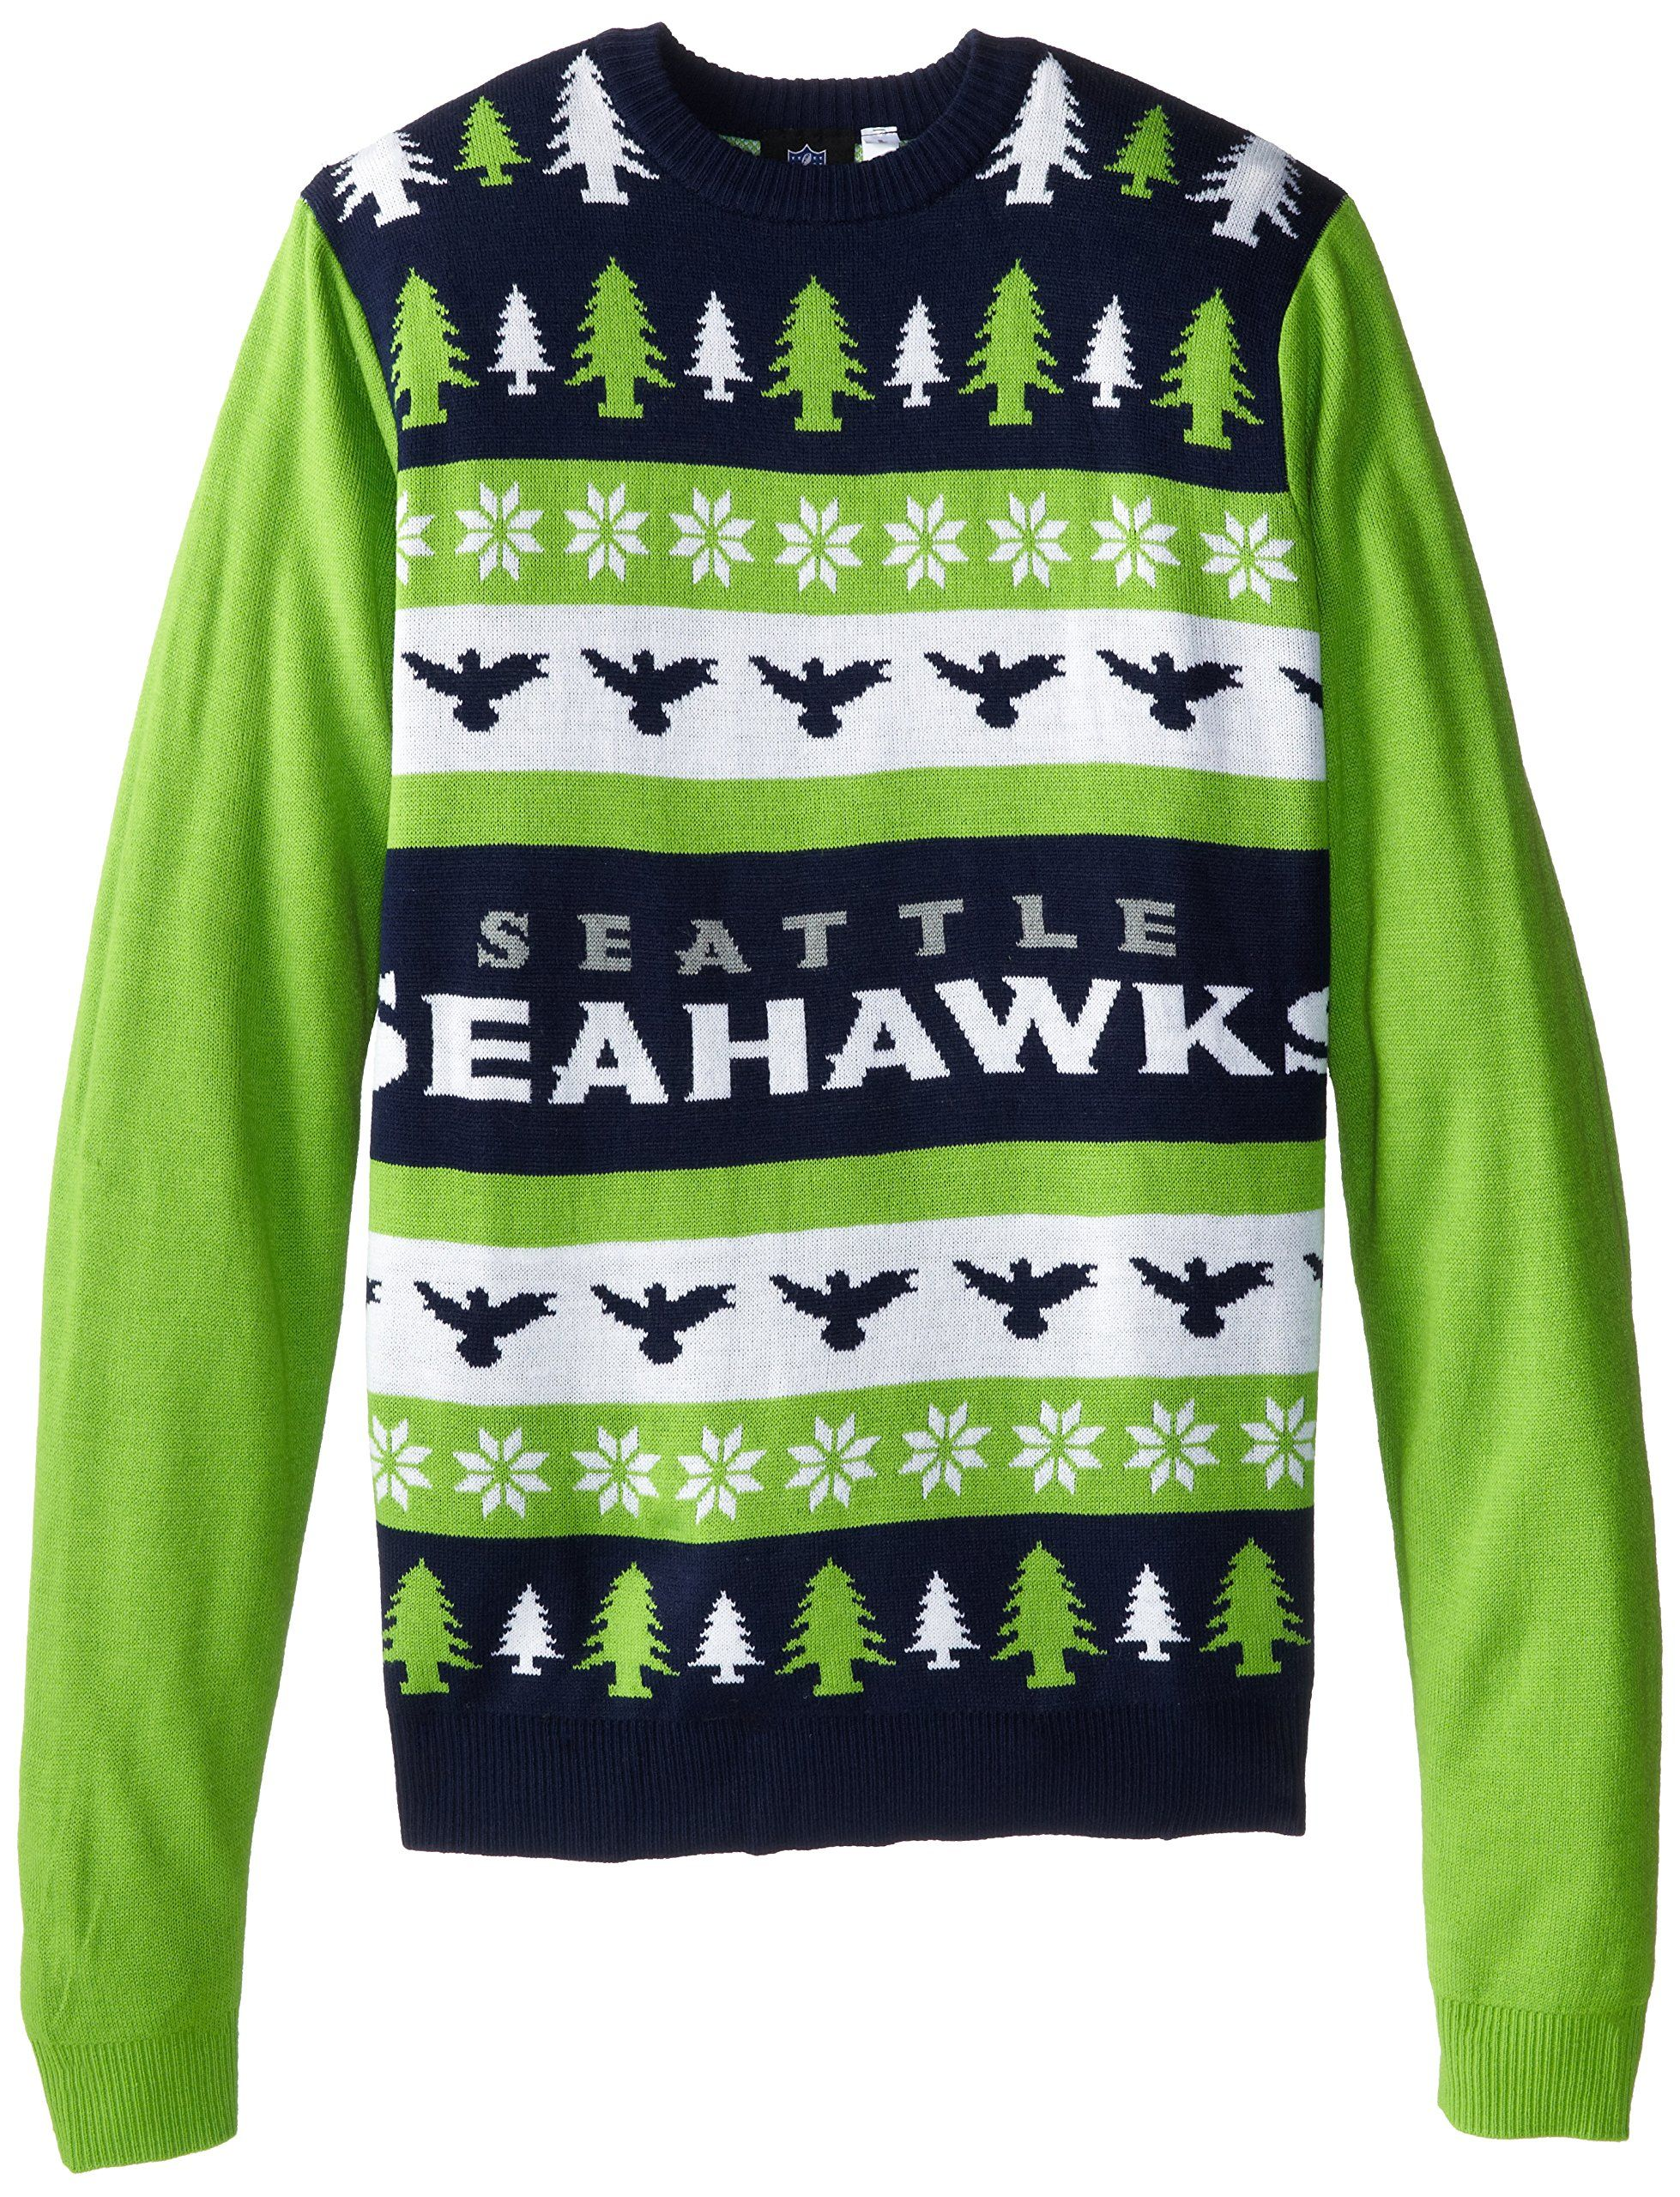 new product b9b59 16714 Amazon.com : NFL One Too Many Ugly Sweater : Sports ...